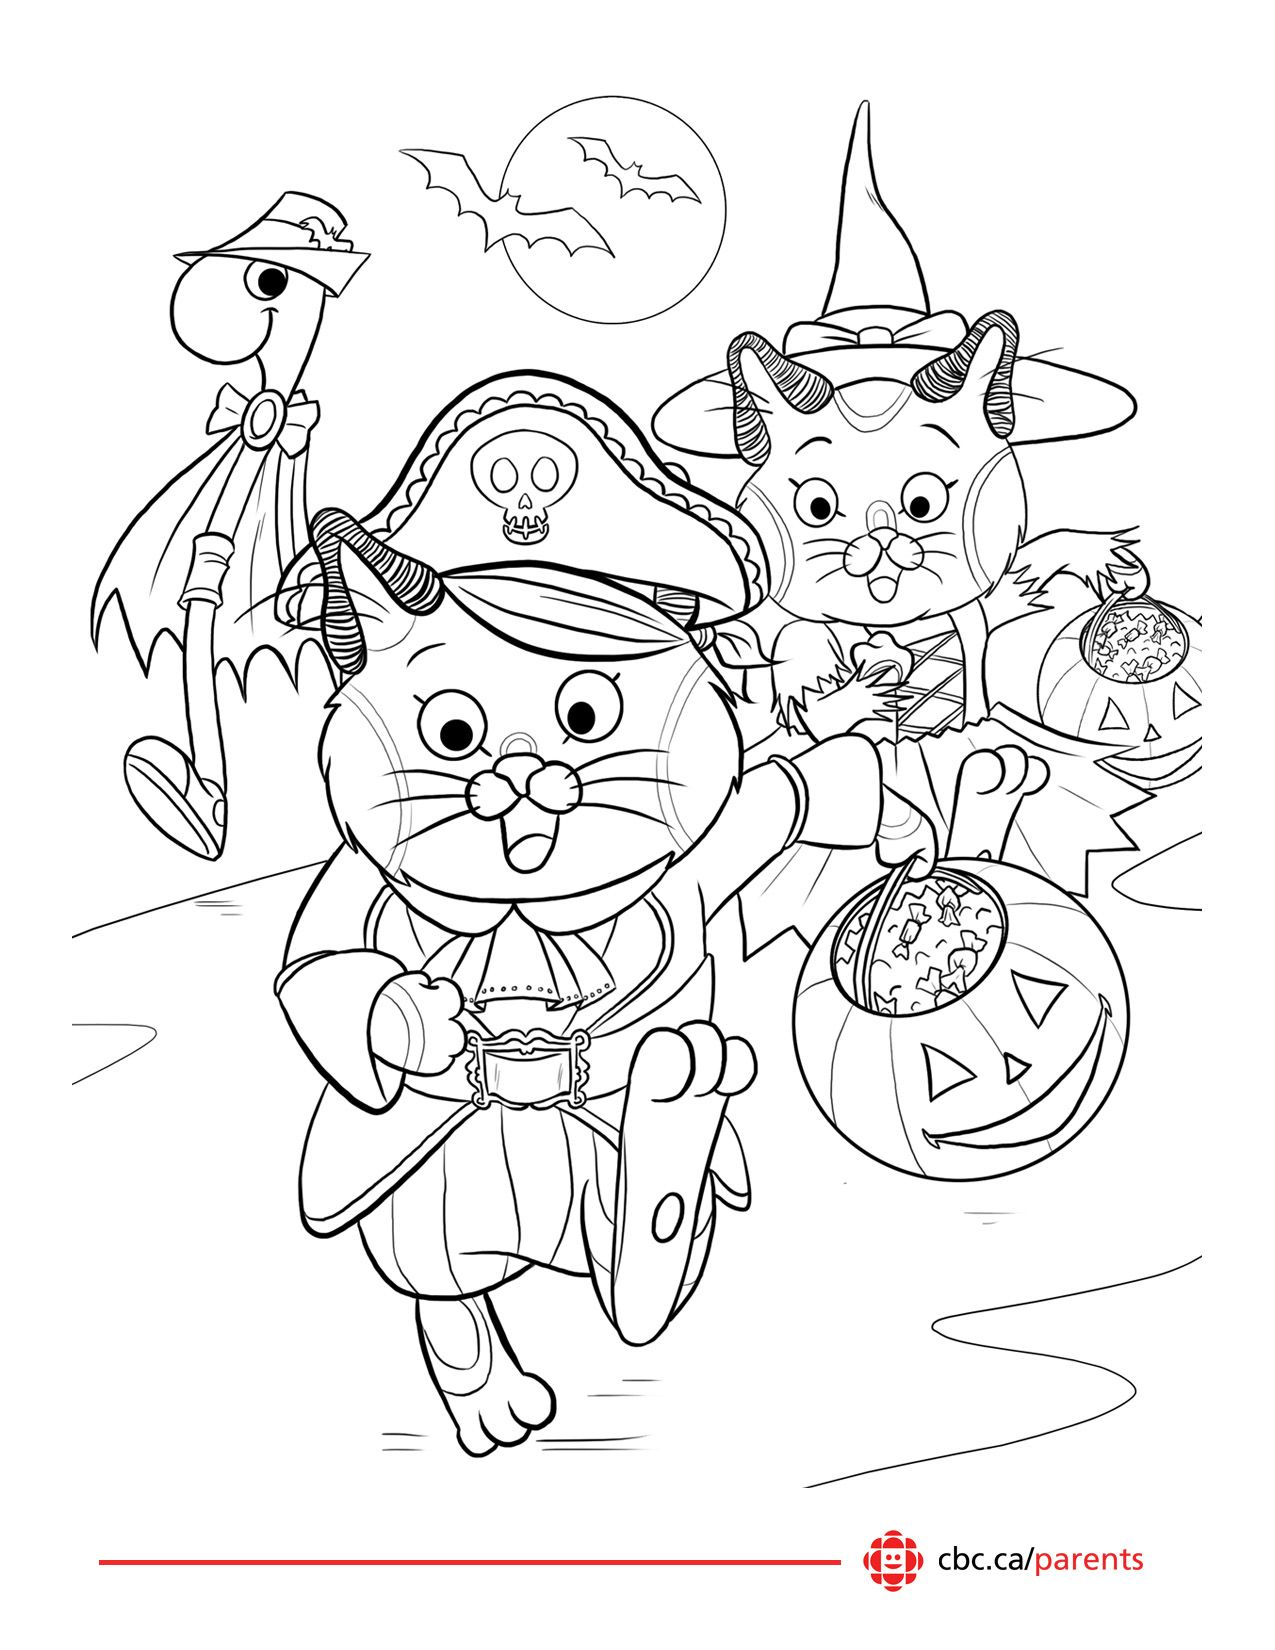 Printable coloring pages daniel tiger - Printable Halloween Colouring Pages